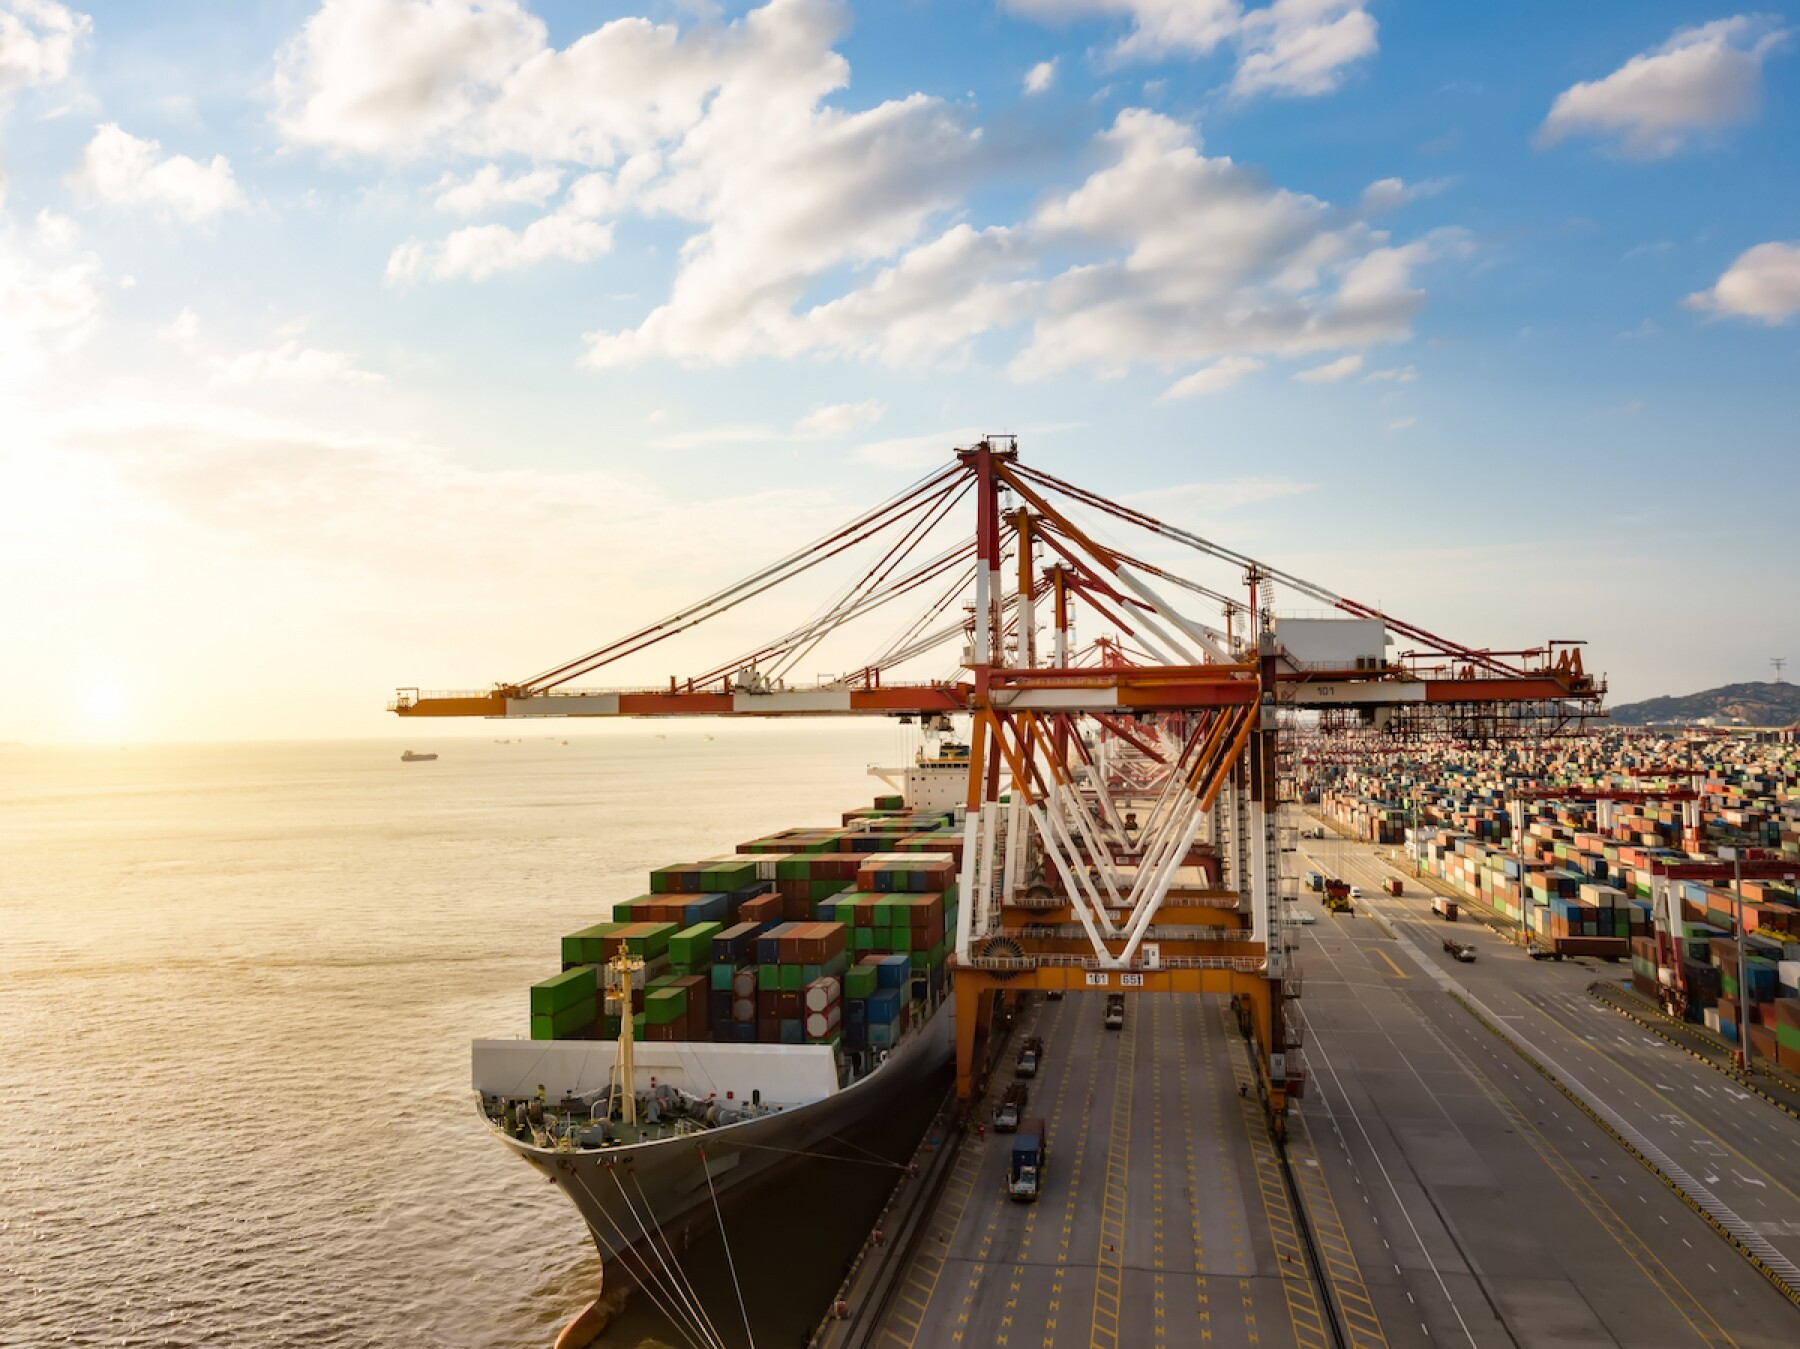 Container terminal handling area, aerial view